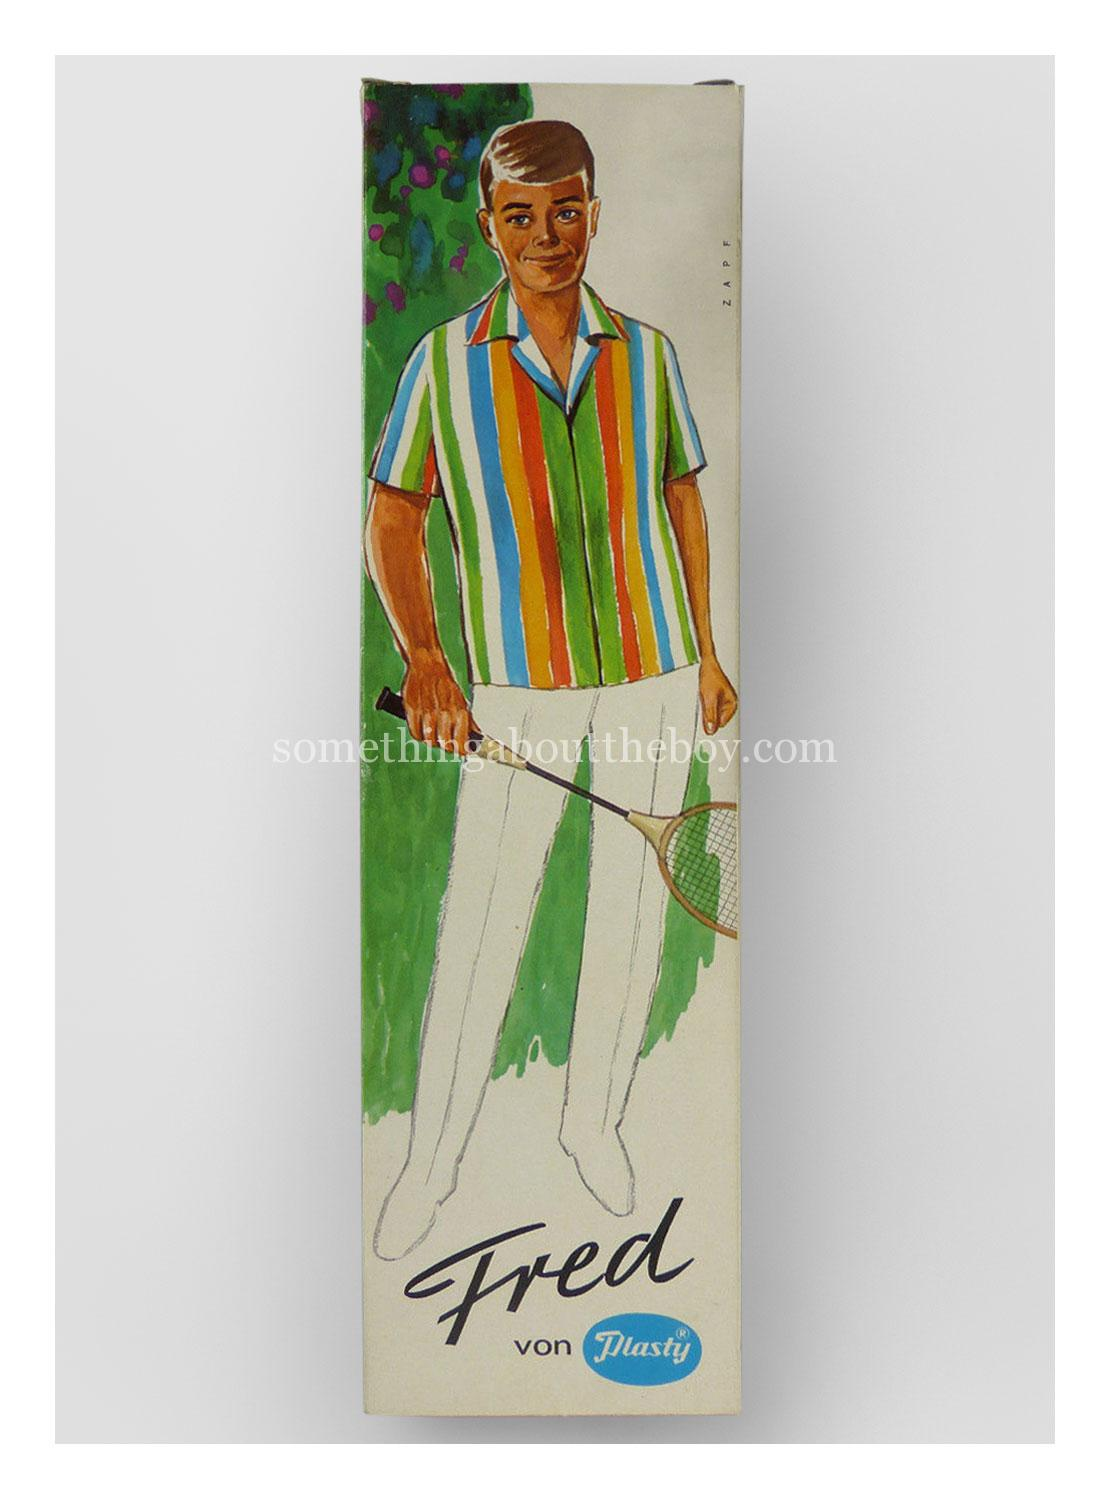 c.1970 Fred original packaging by Plasty